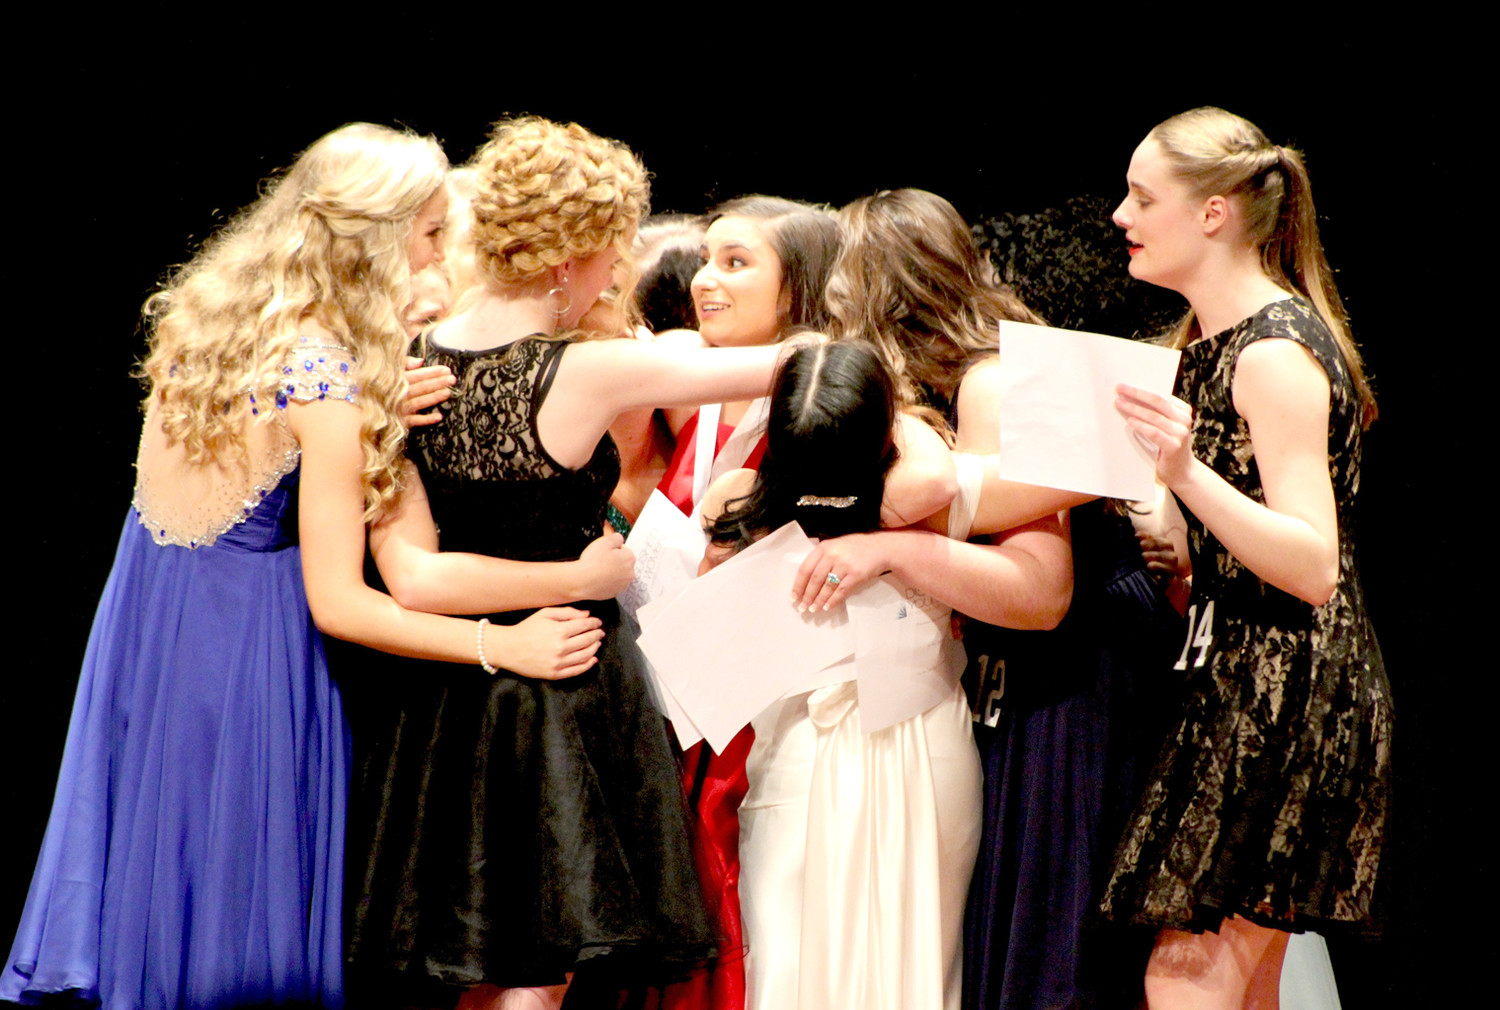 SHOCKED by her win, Elena Burton is surrounded by the other competitors who rushed to congratulate her after she was named the 2019 Distinguished Young Woman of Cleveland.